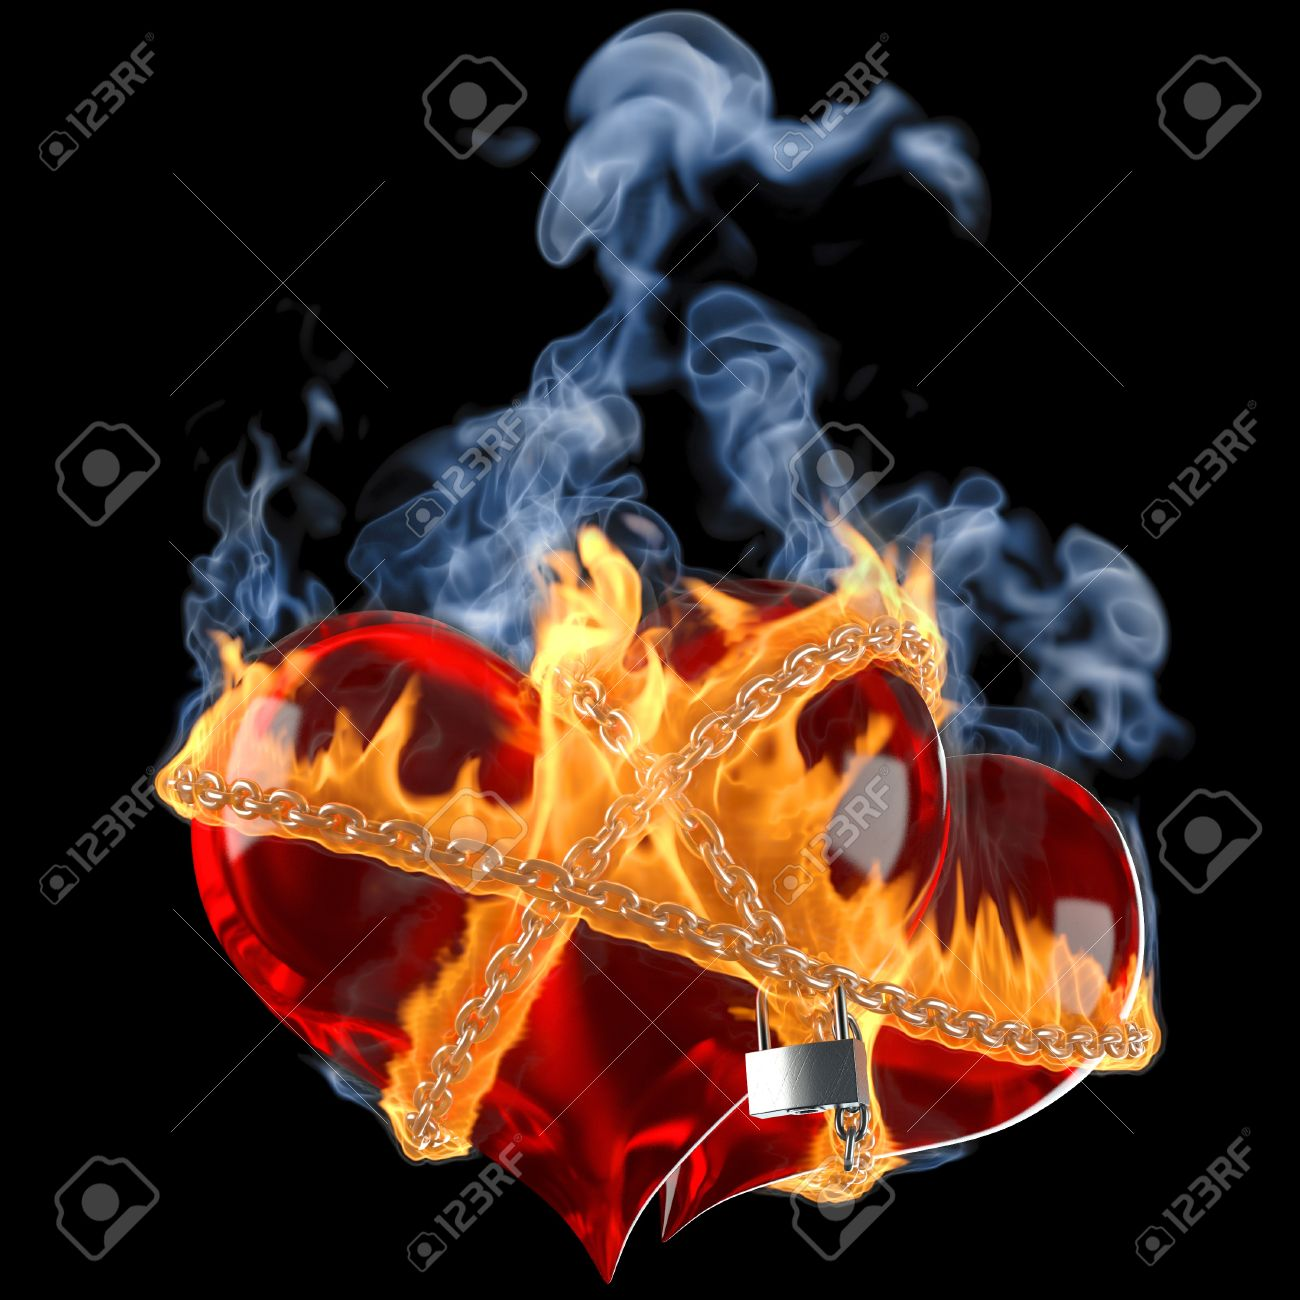 two hearts linked together by a burning chain. isolated on black. Stock Photo - 10267355